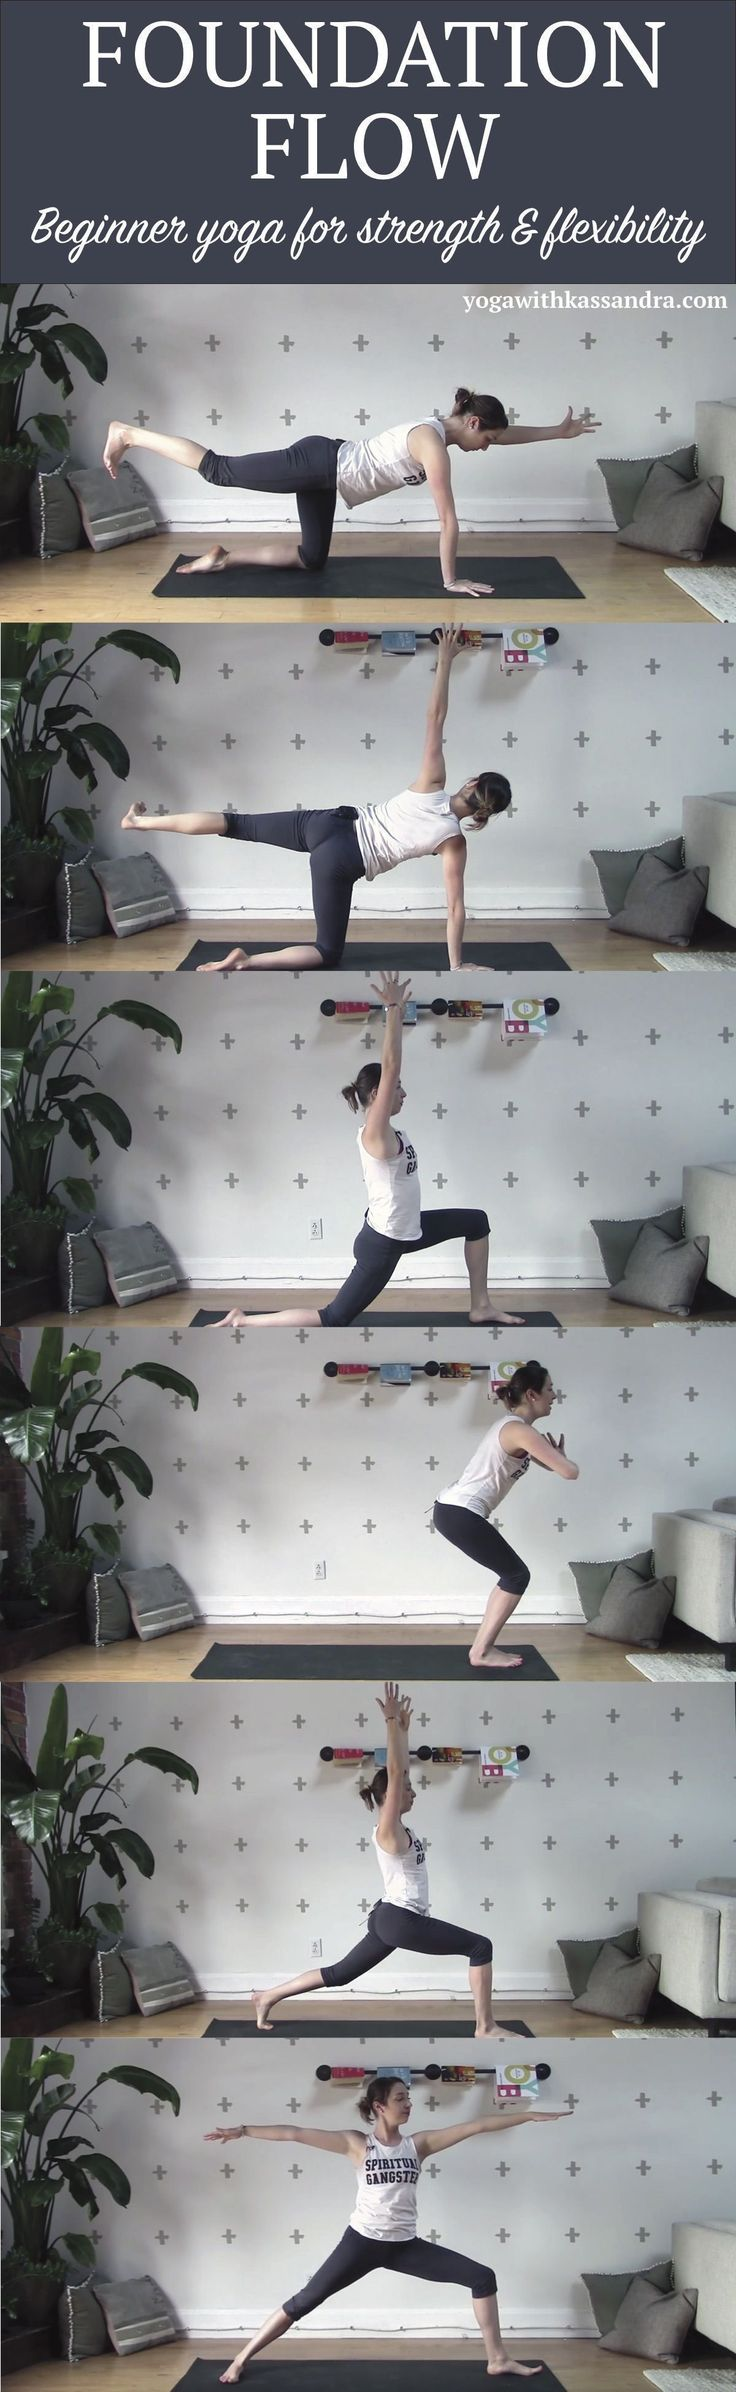 Let me start by saying this, I've labeled these poses as beginner, but that doesn't have to mean they're easy. They will help you build strength, balance and flexibility. They are also poses you will return to over and over again in your practice, as they http://www.yogaweightloss.net/category/types-of-yoga/